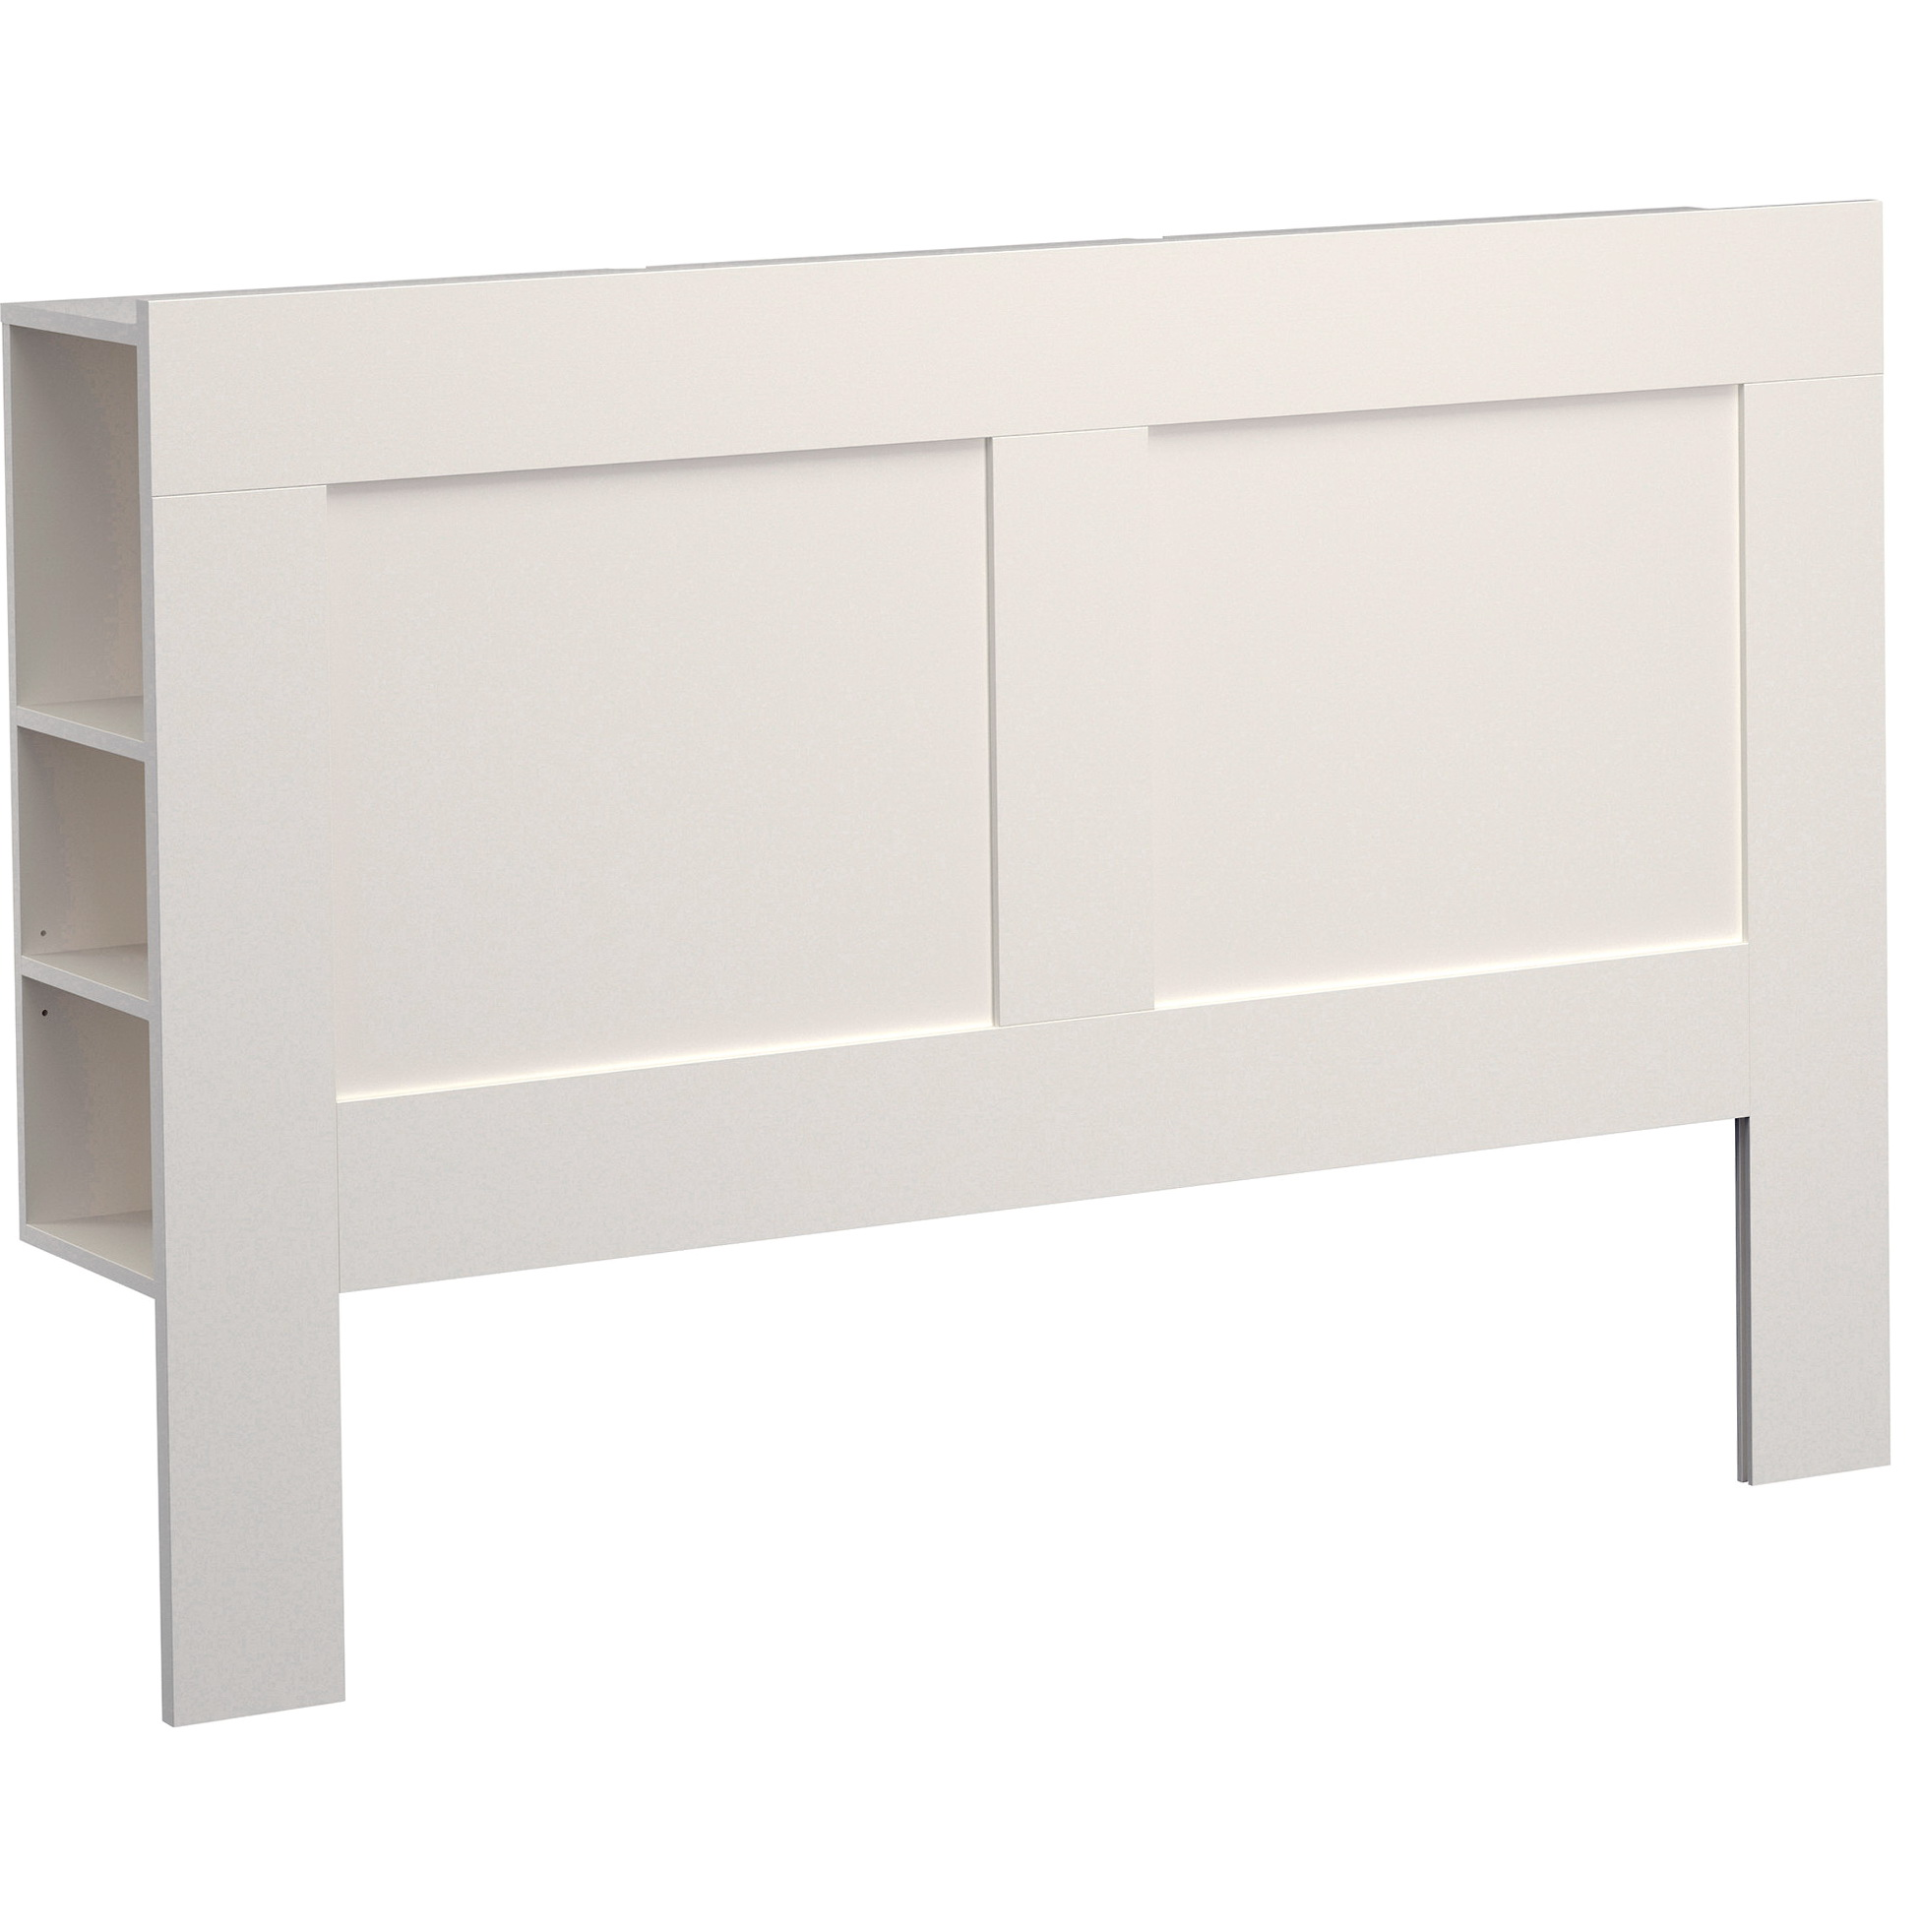 Queen Bookcase Headboard Ikea